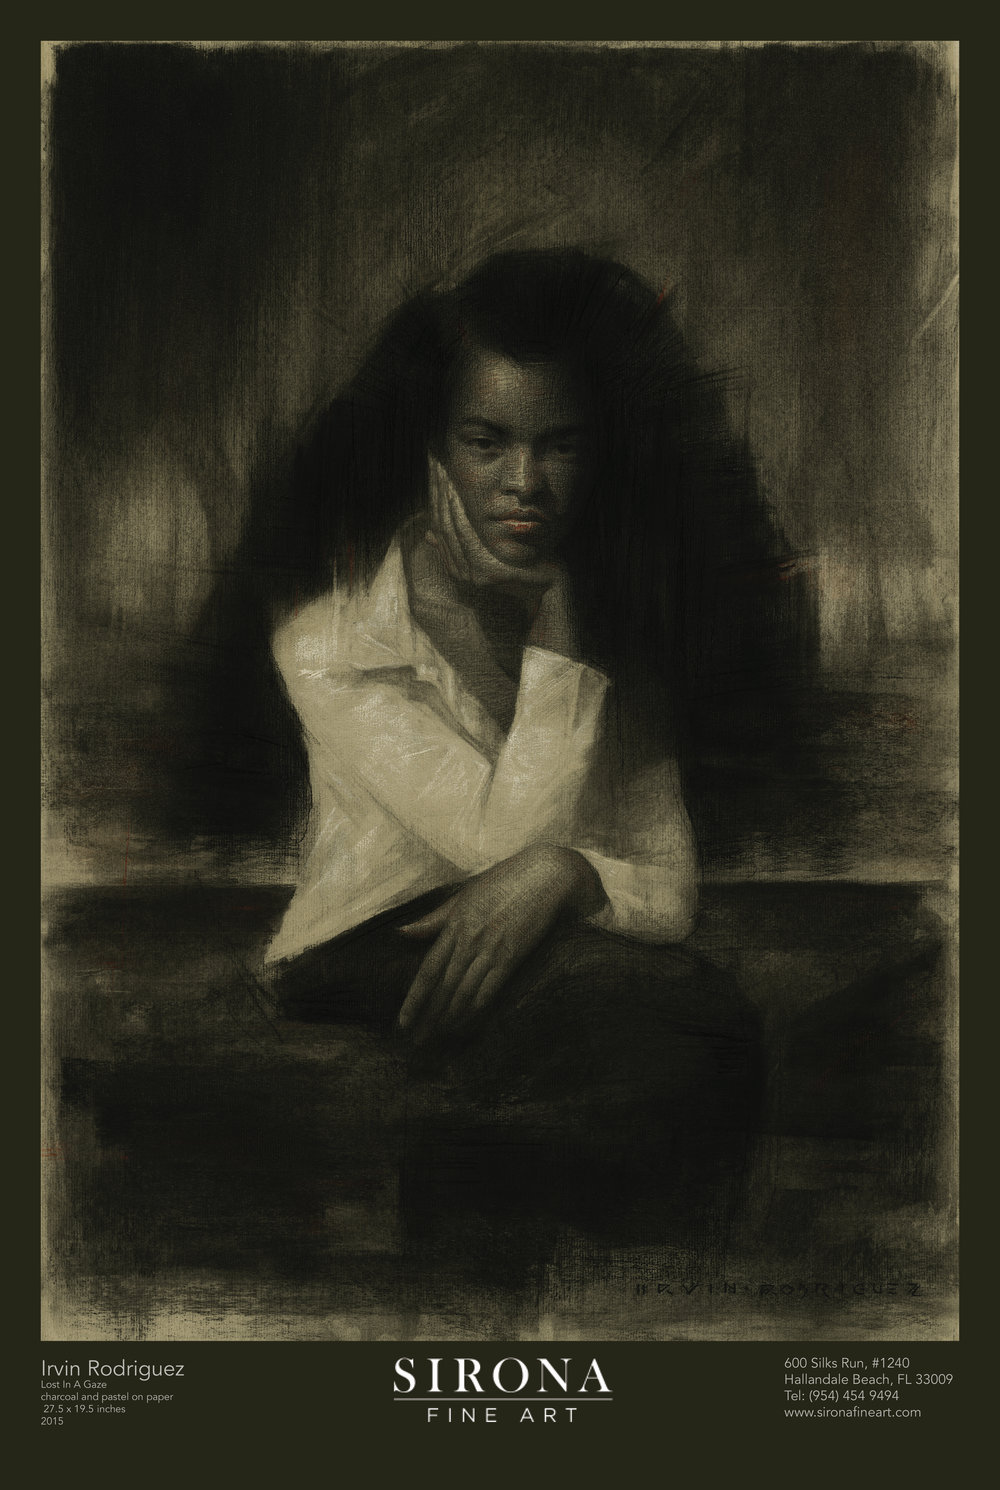 Irvin Rodriguez,  Lost In A Gaze  | charcoal and pastel on paper | 27.5 x 19.5 inches | 2015